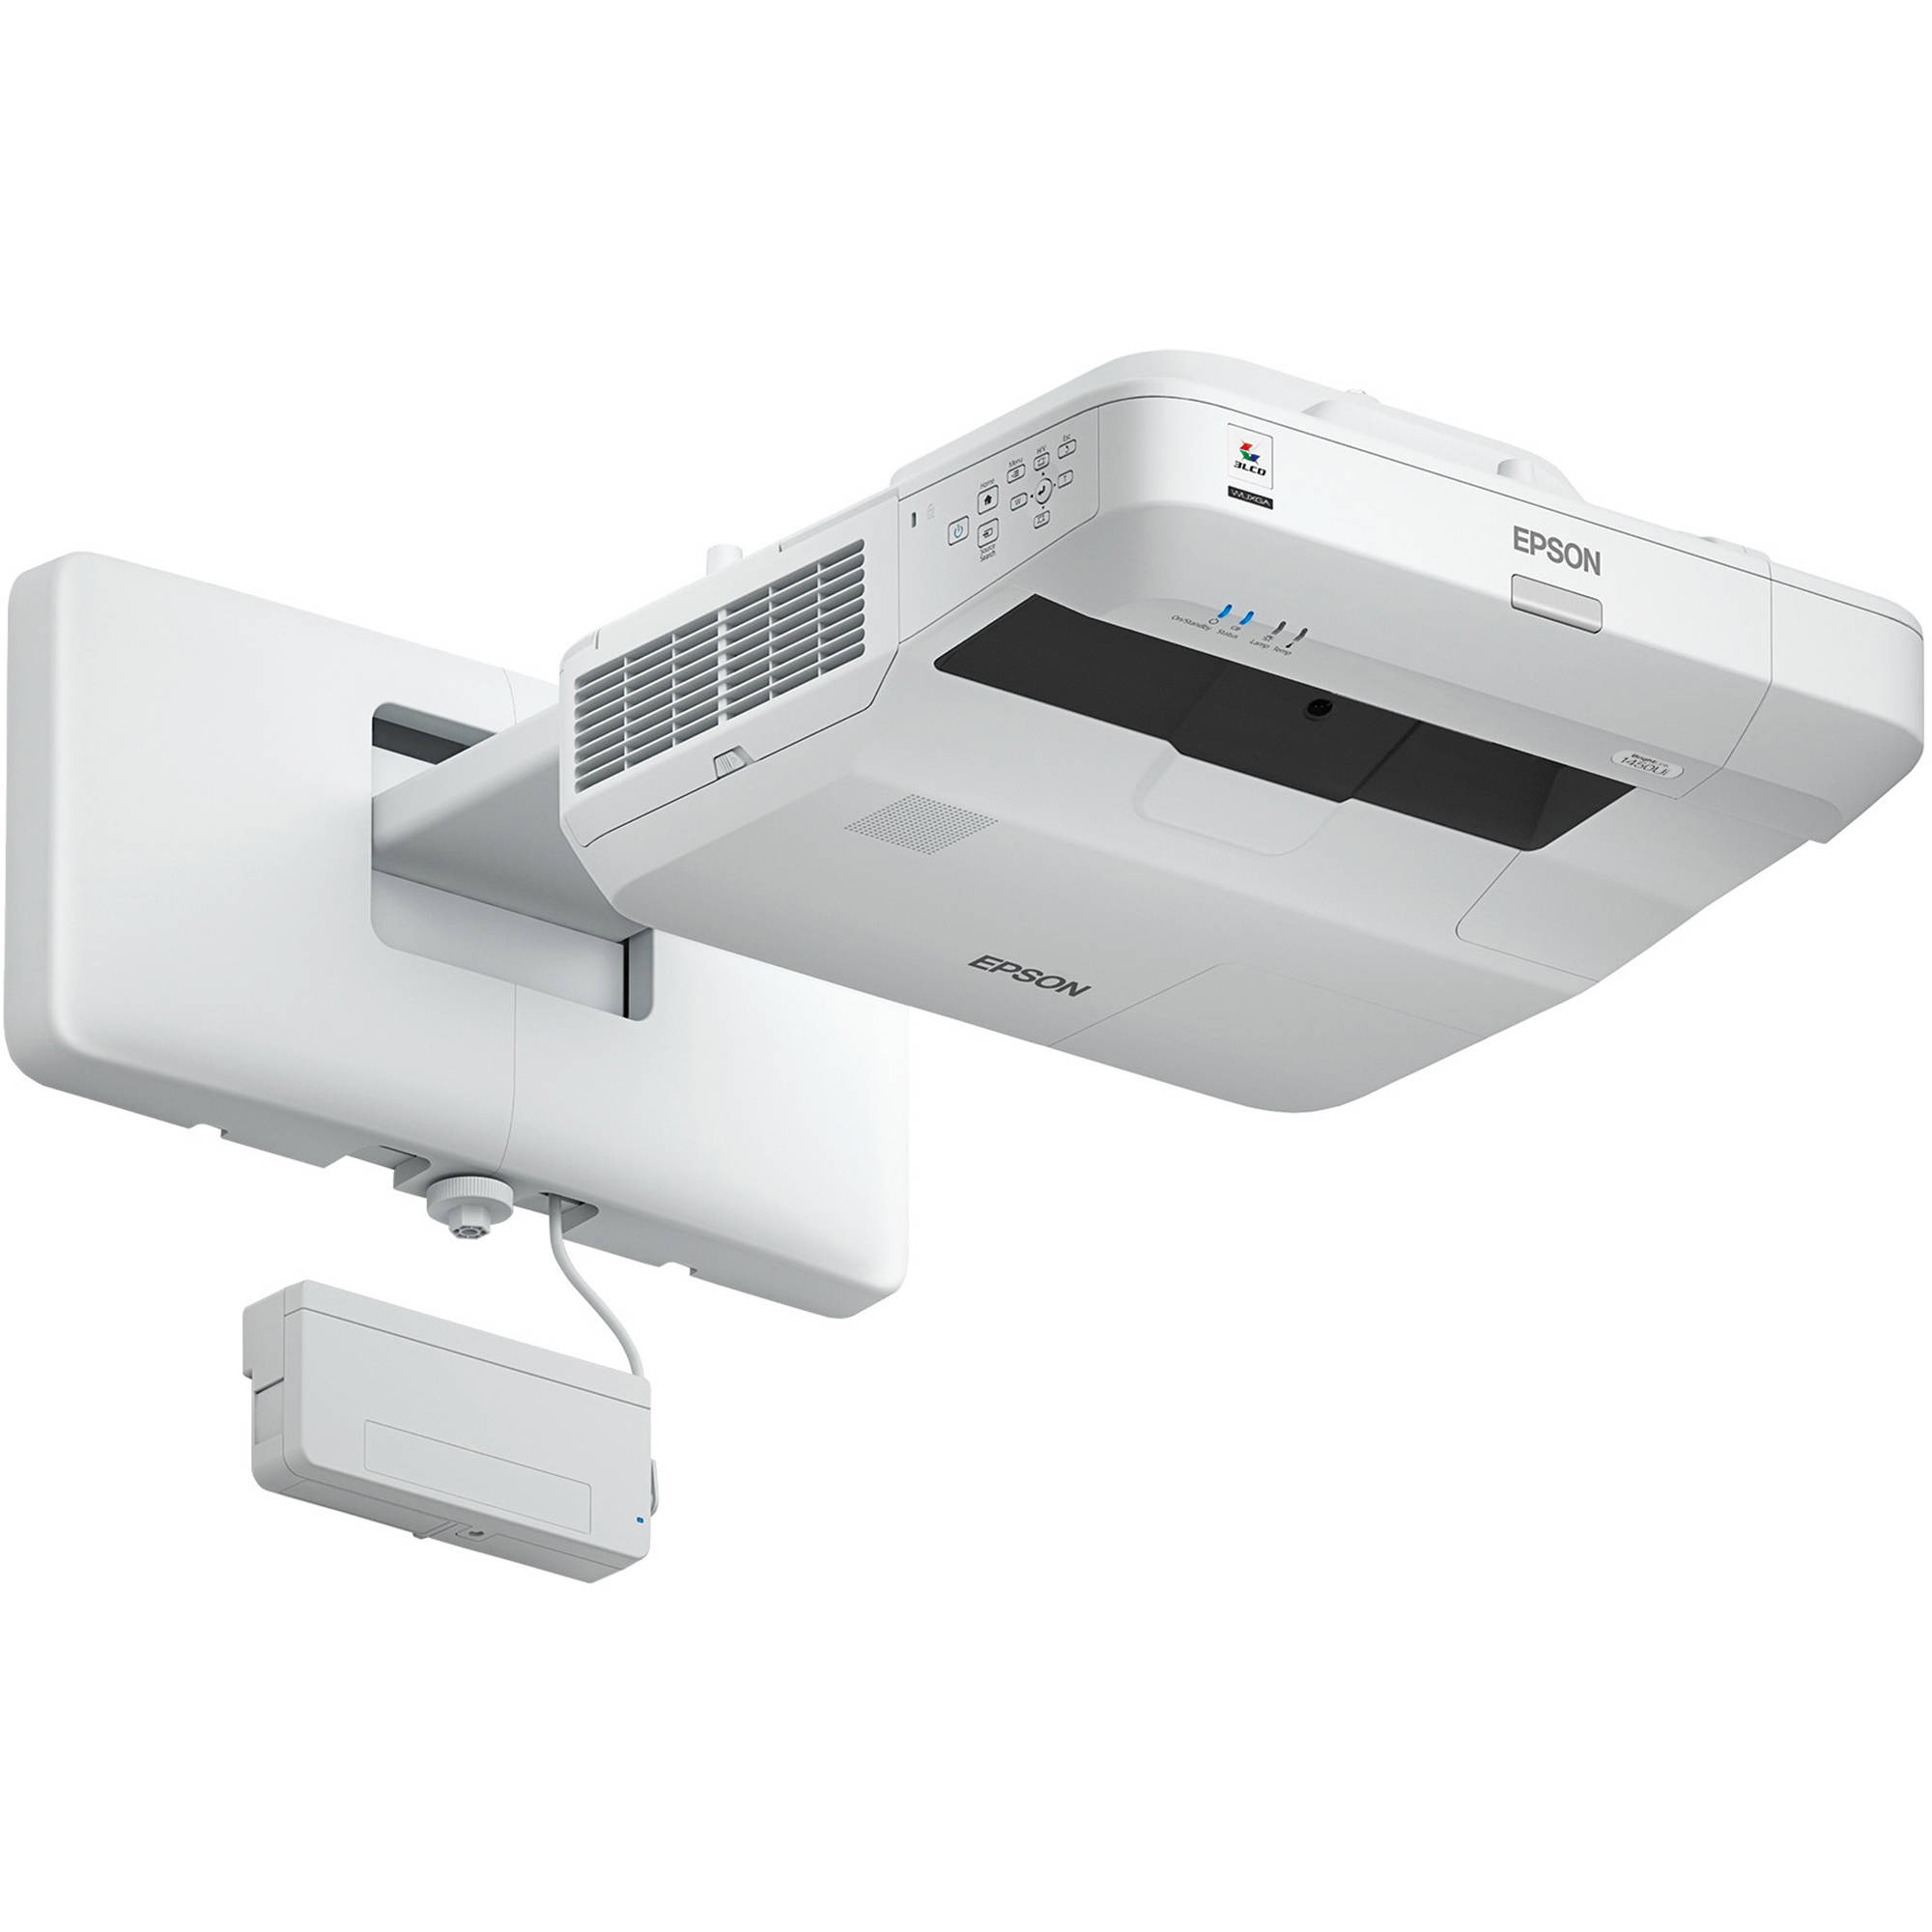 BRIGHTLINK EPSON WINDOWS 8 DRIVERS DOWNLOAD (2019)